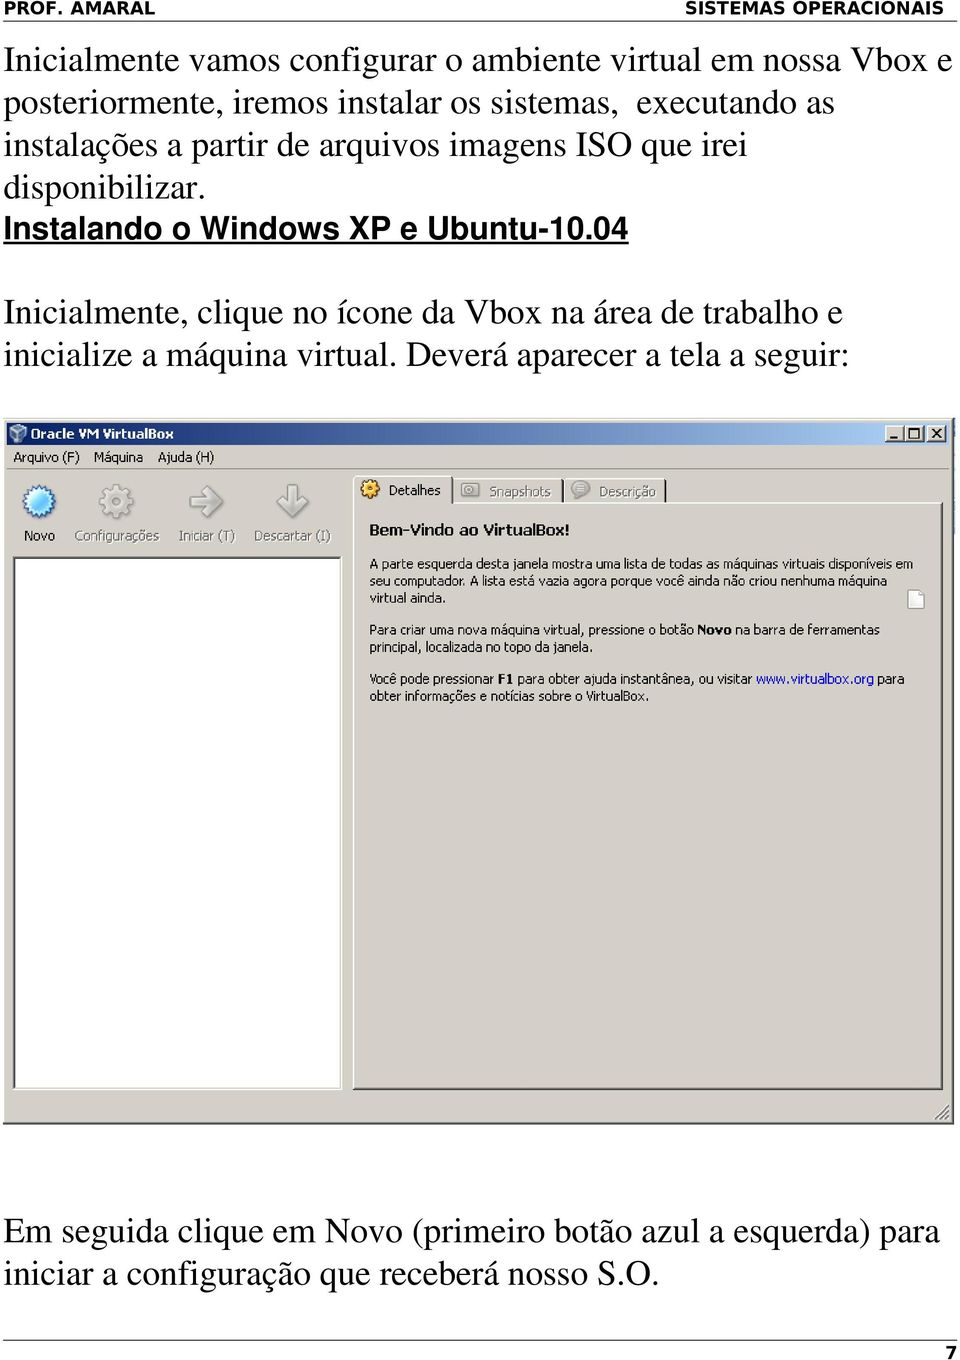 Instalando o Windows XP e Ubuntu 10.